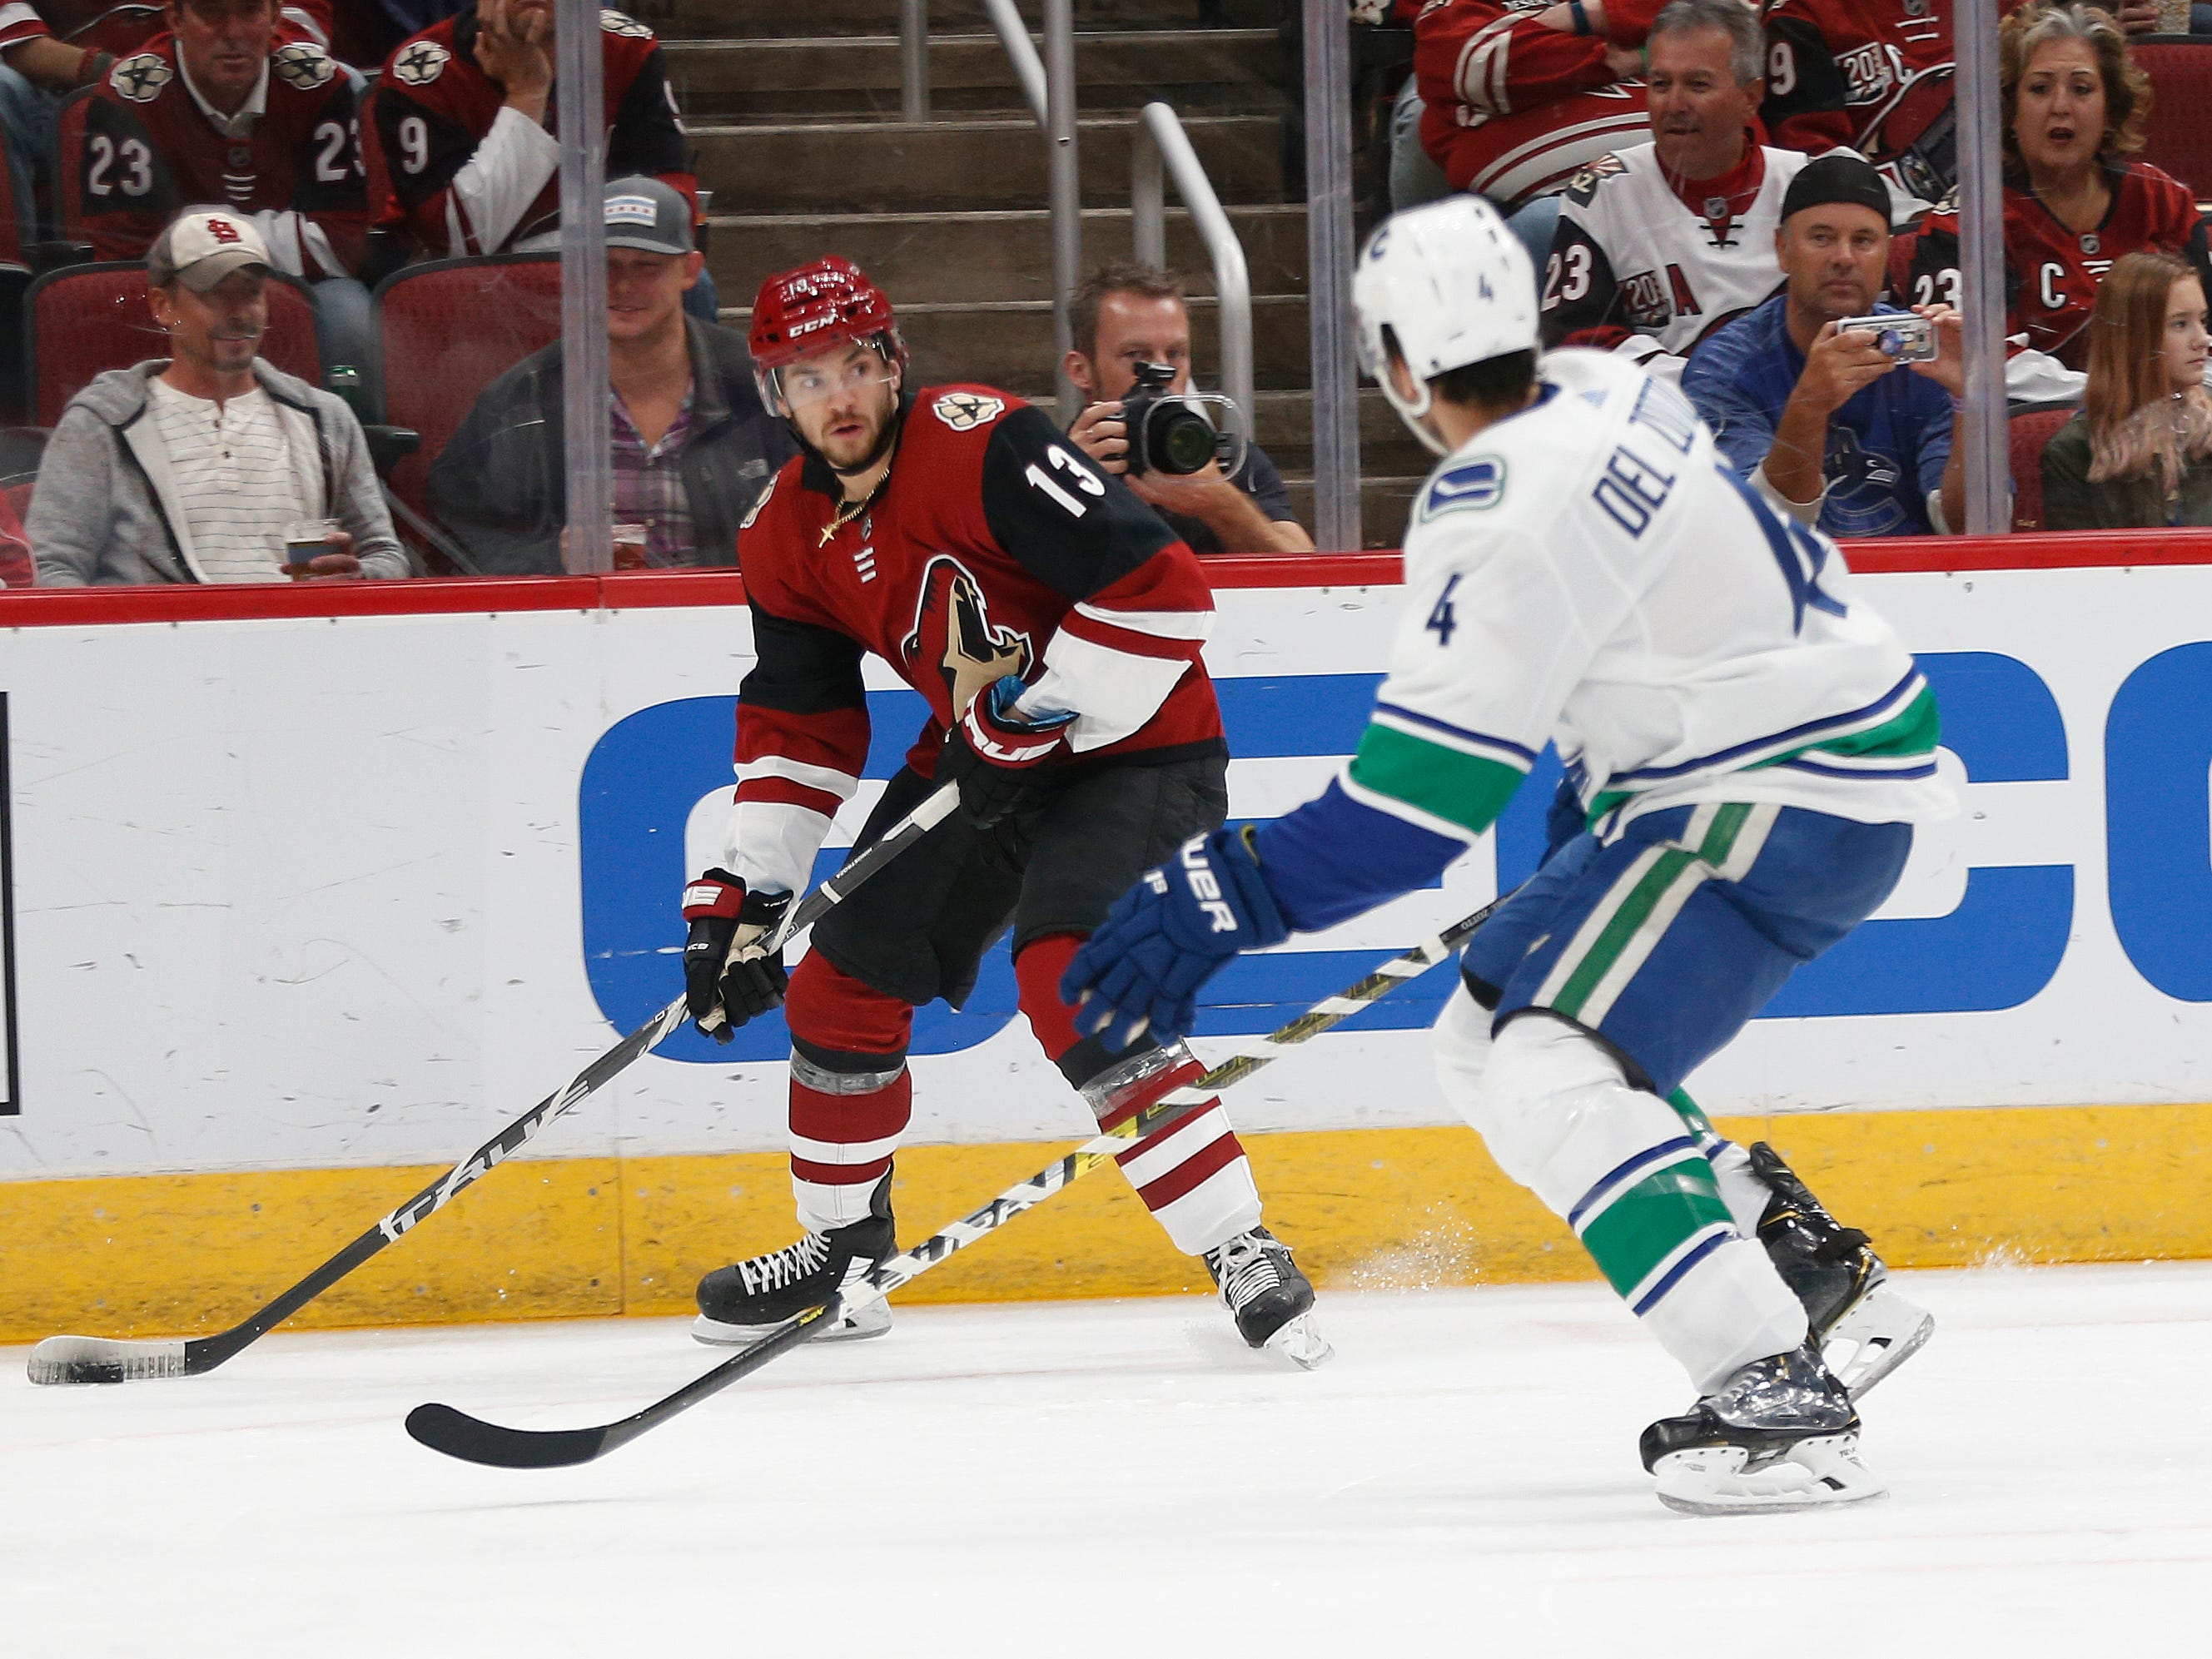 Coyotes' Vinnie Hinostroza (13) passes the puck against Canucks' Michael Del Zotto (4) during the first period at Gila River Arena in Glendale, Ariz. on October 25, 2018.